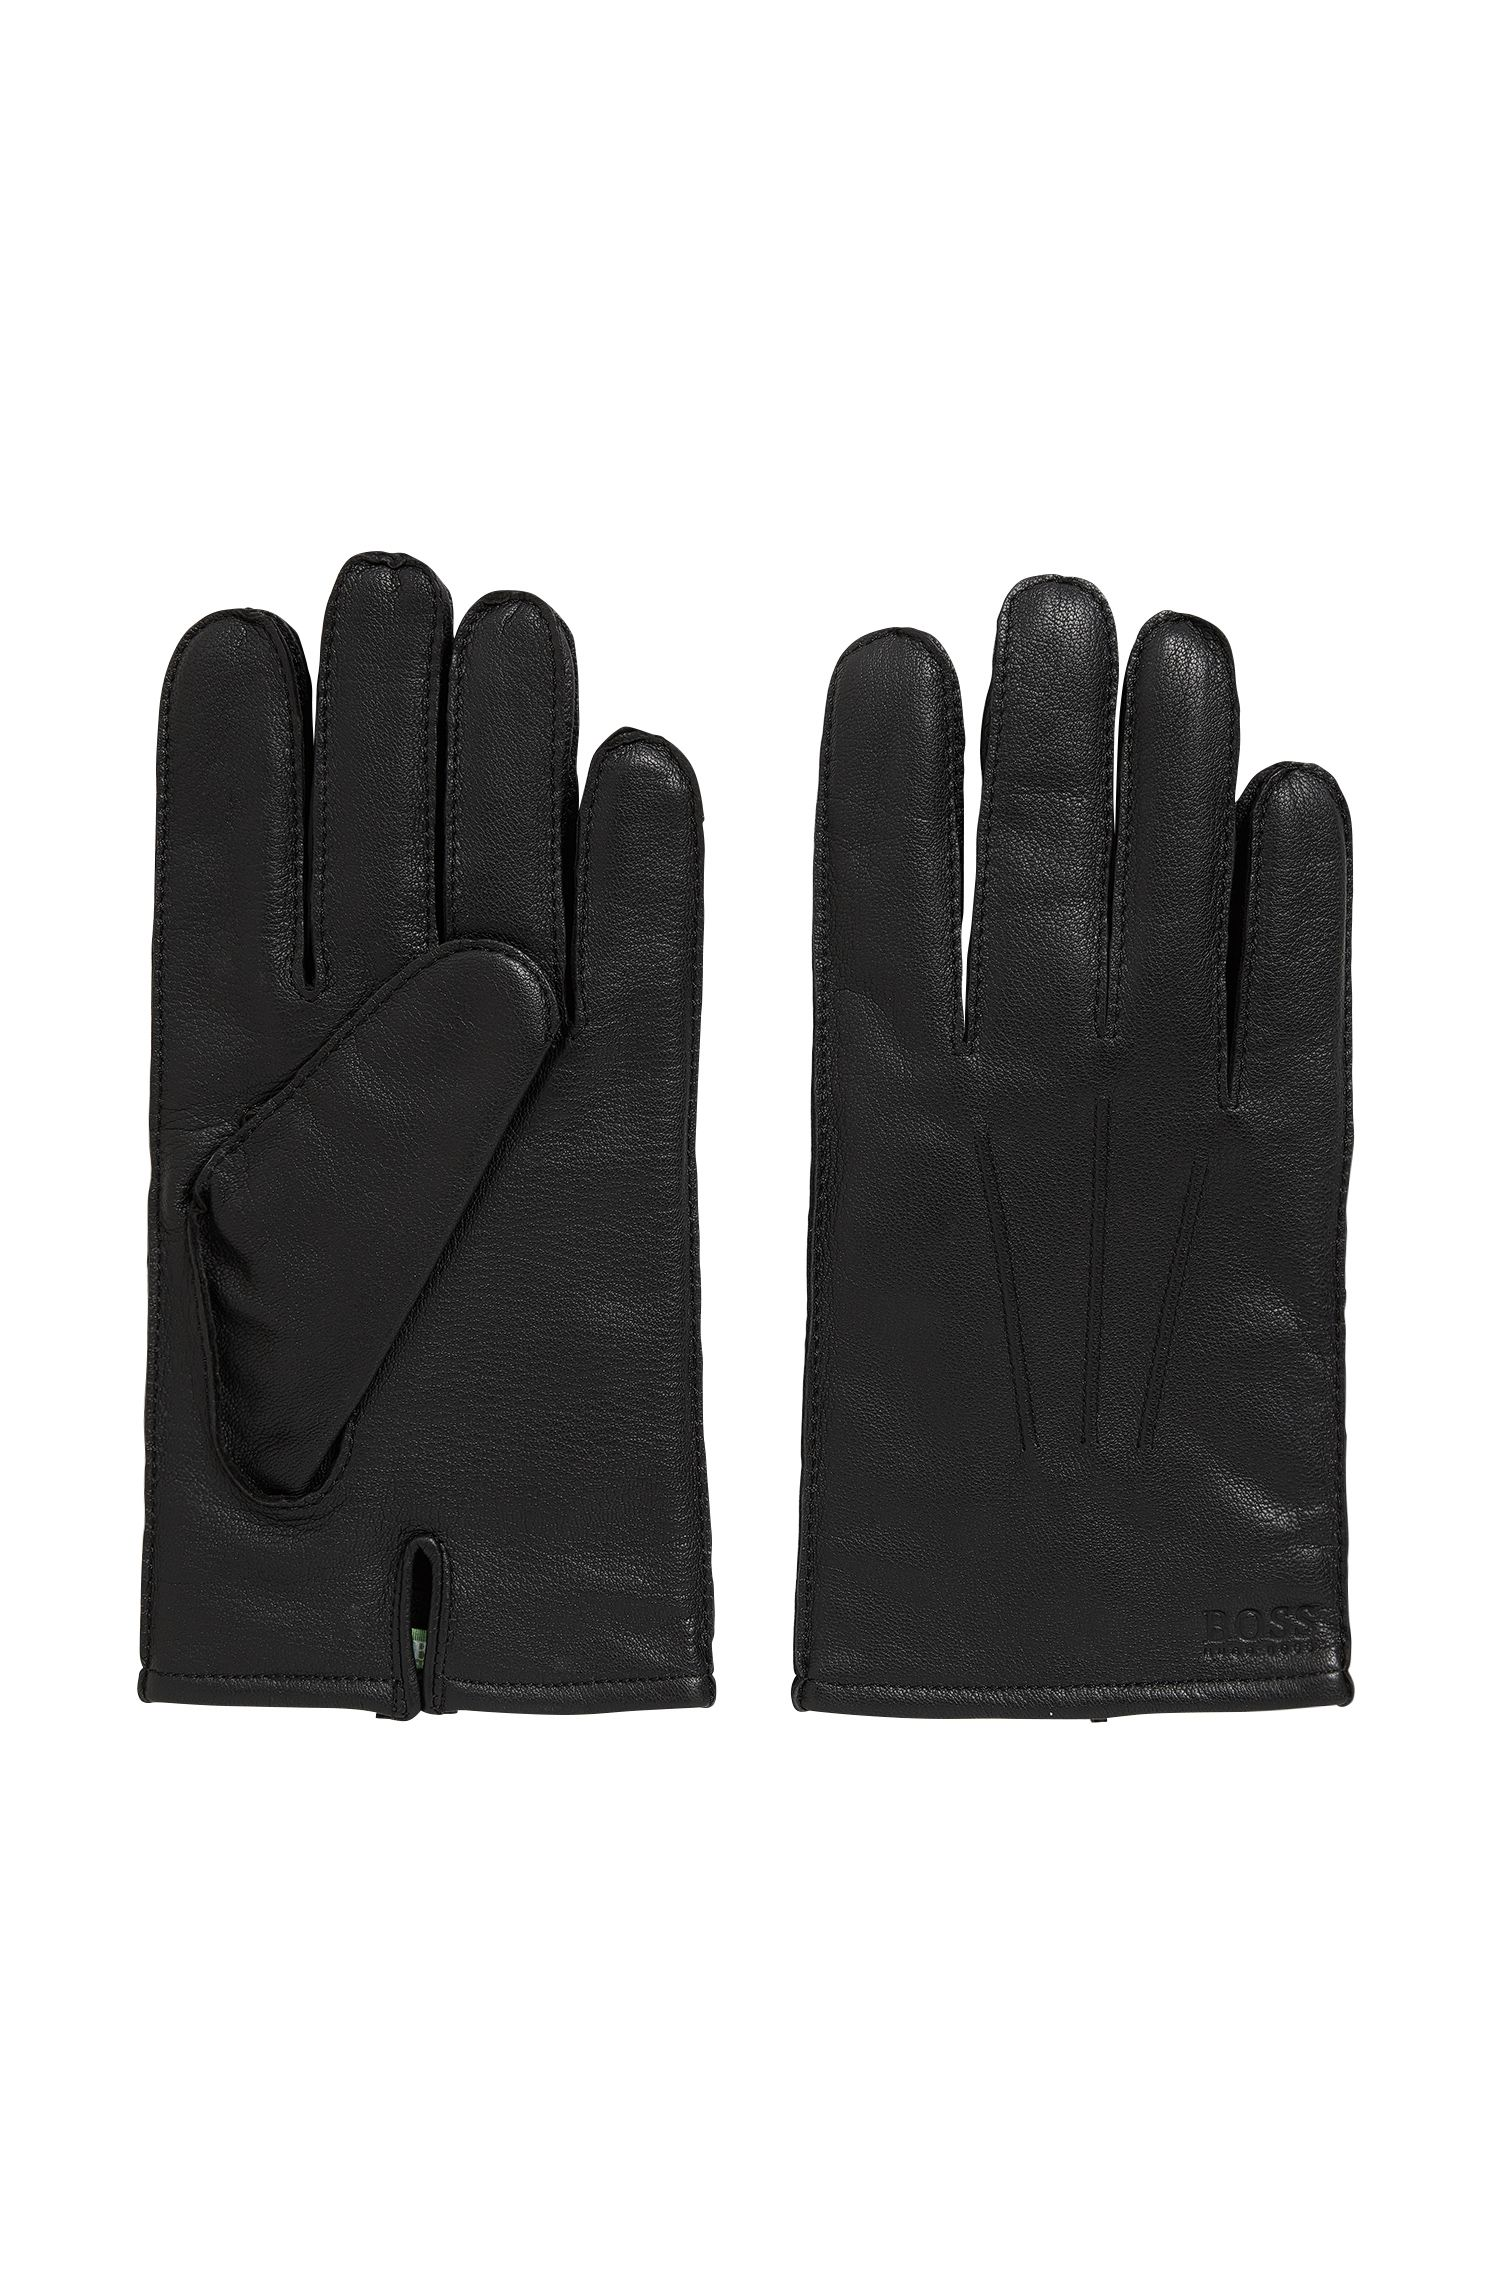 Lined gloves in nappa leather with split cuff